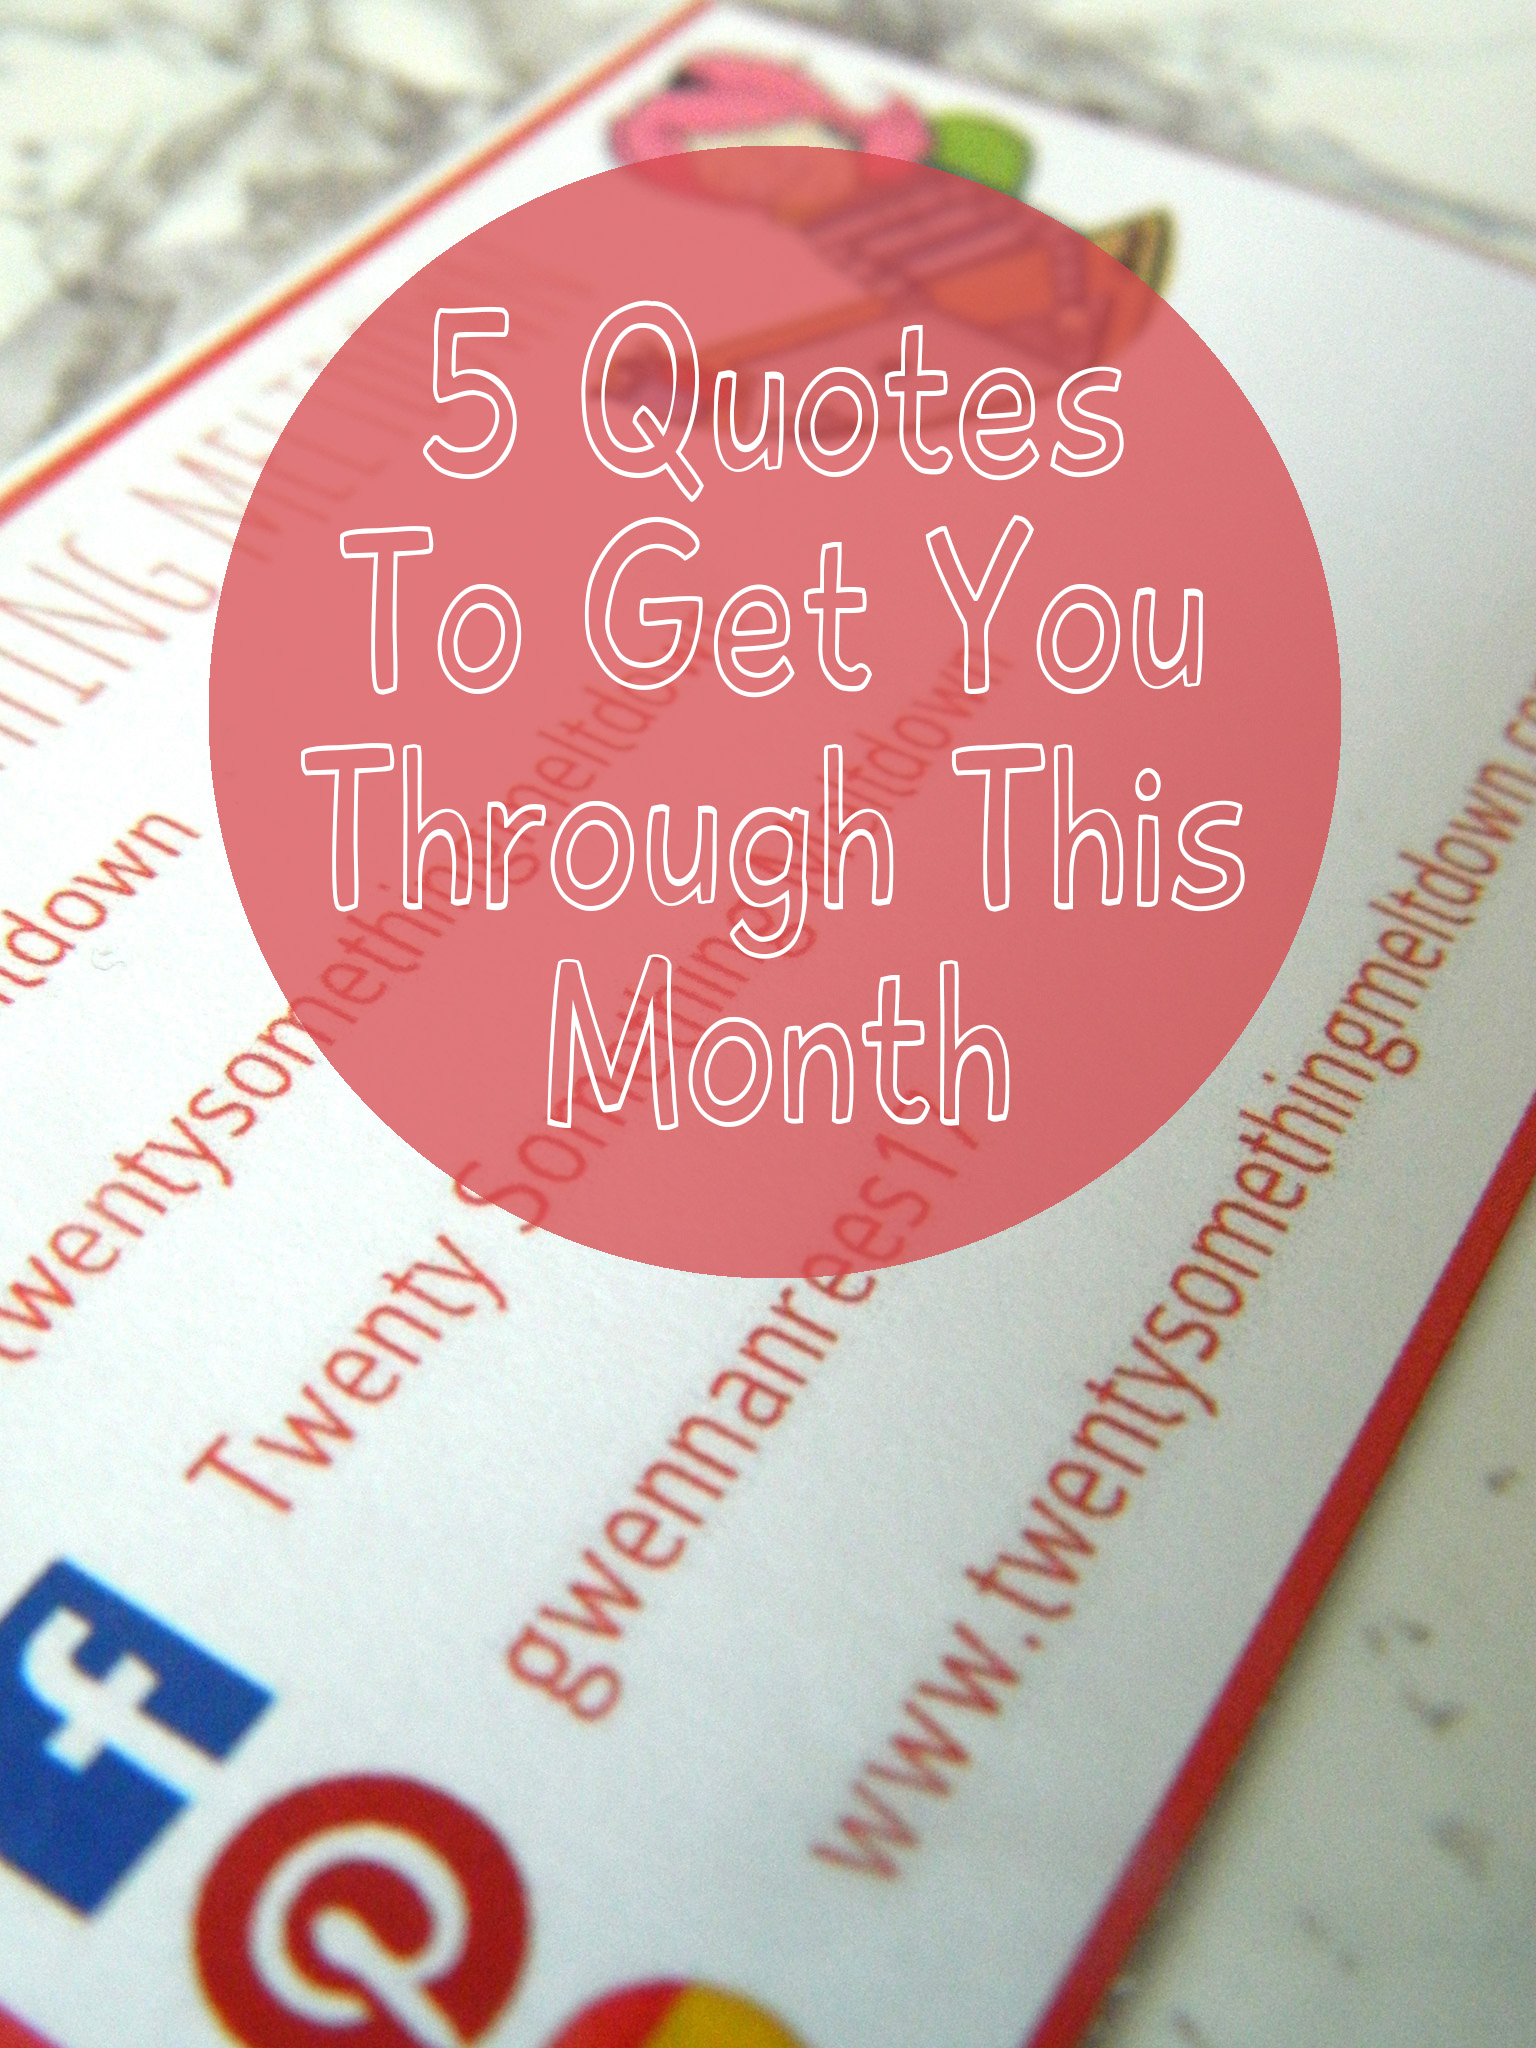 5 Quotes To Live By This April promo photo of business card.